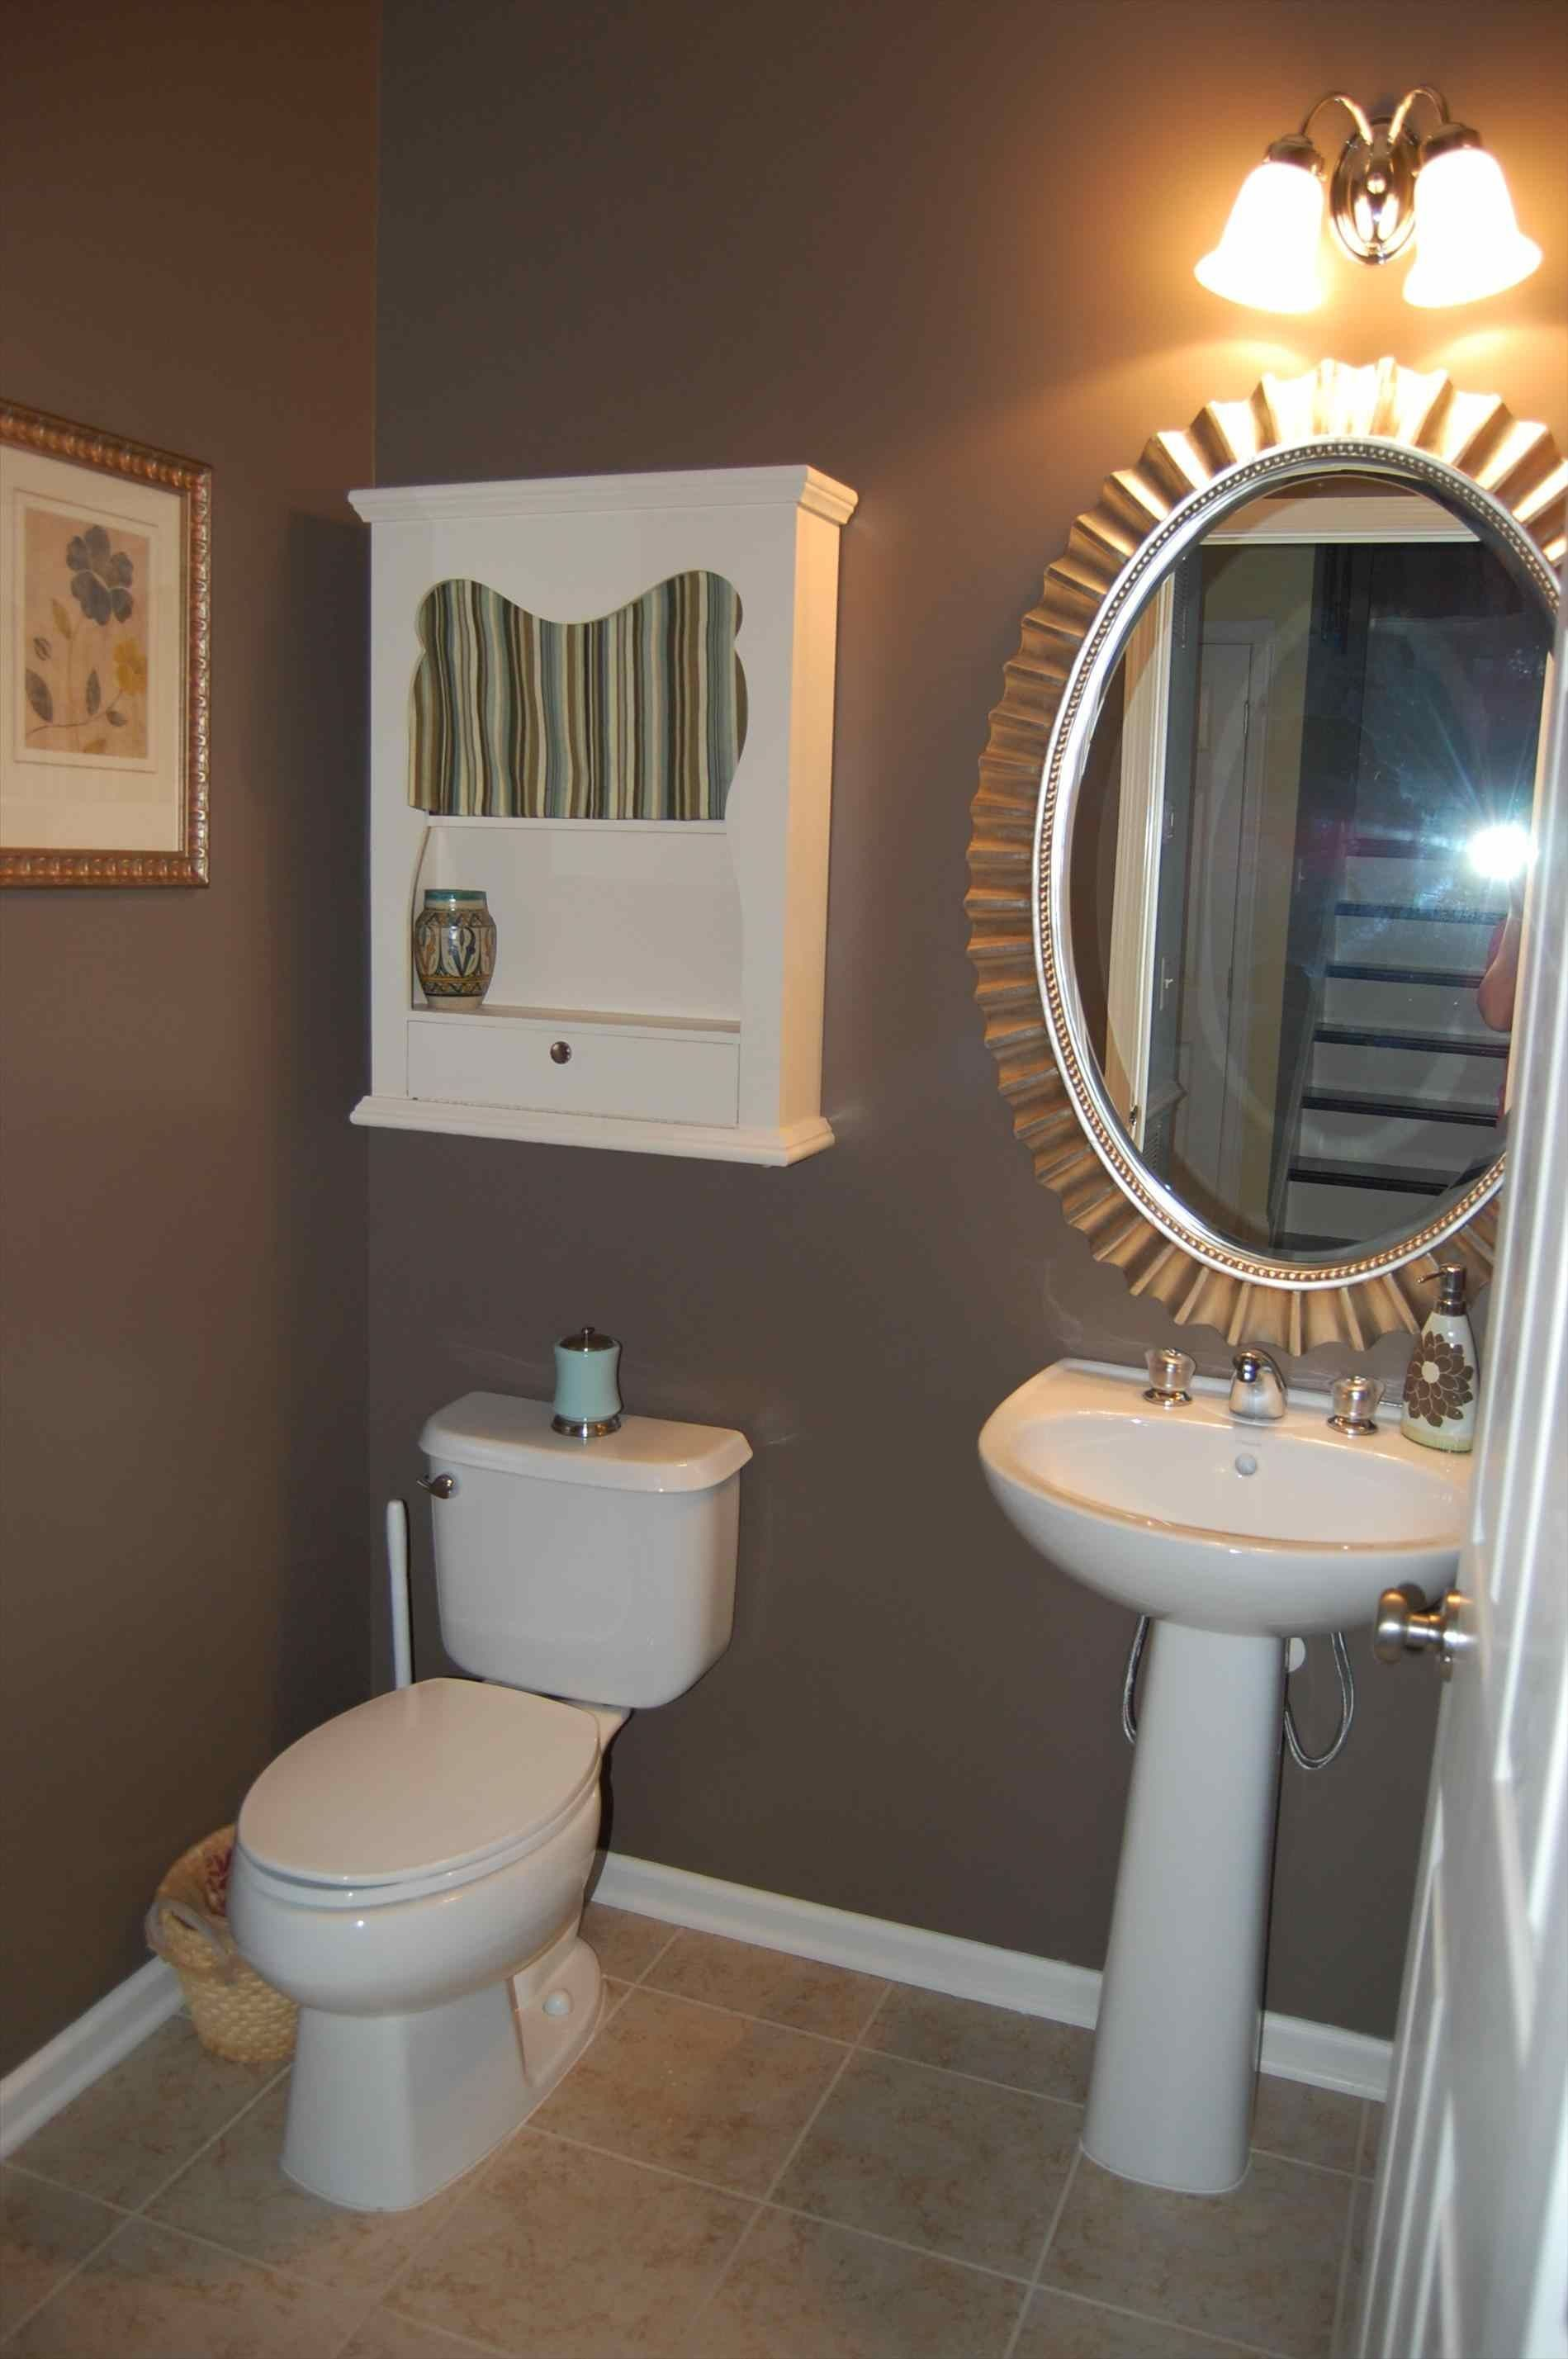 Paint Colors For A Small Bathroom With No Natural Light